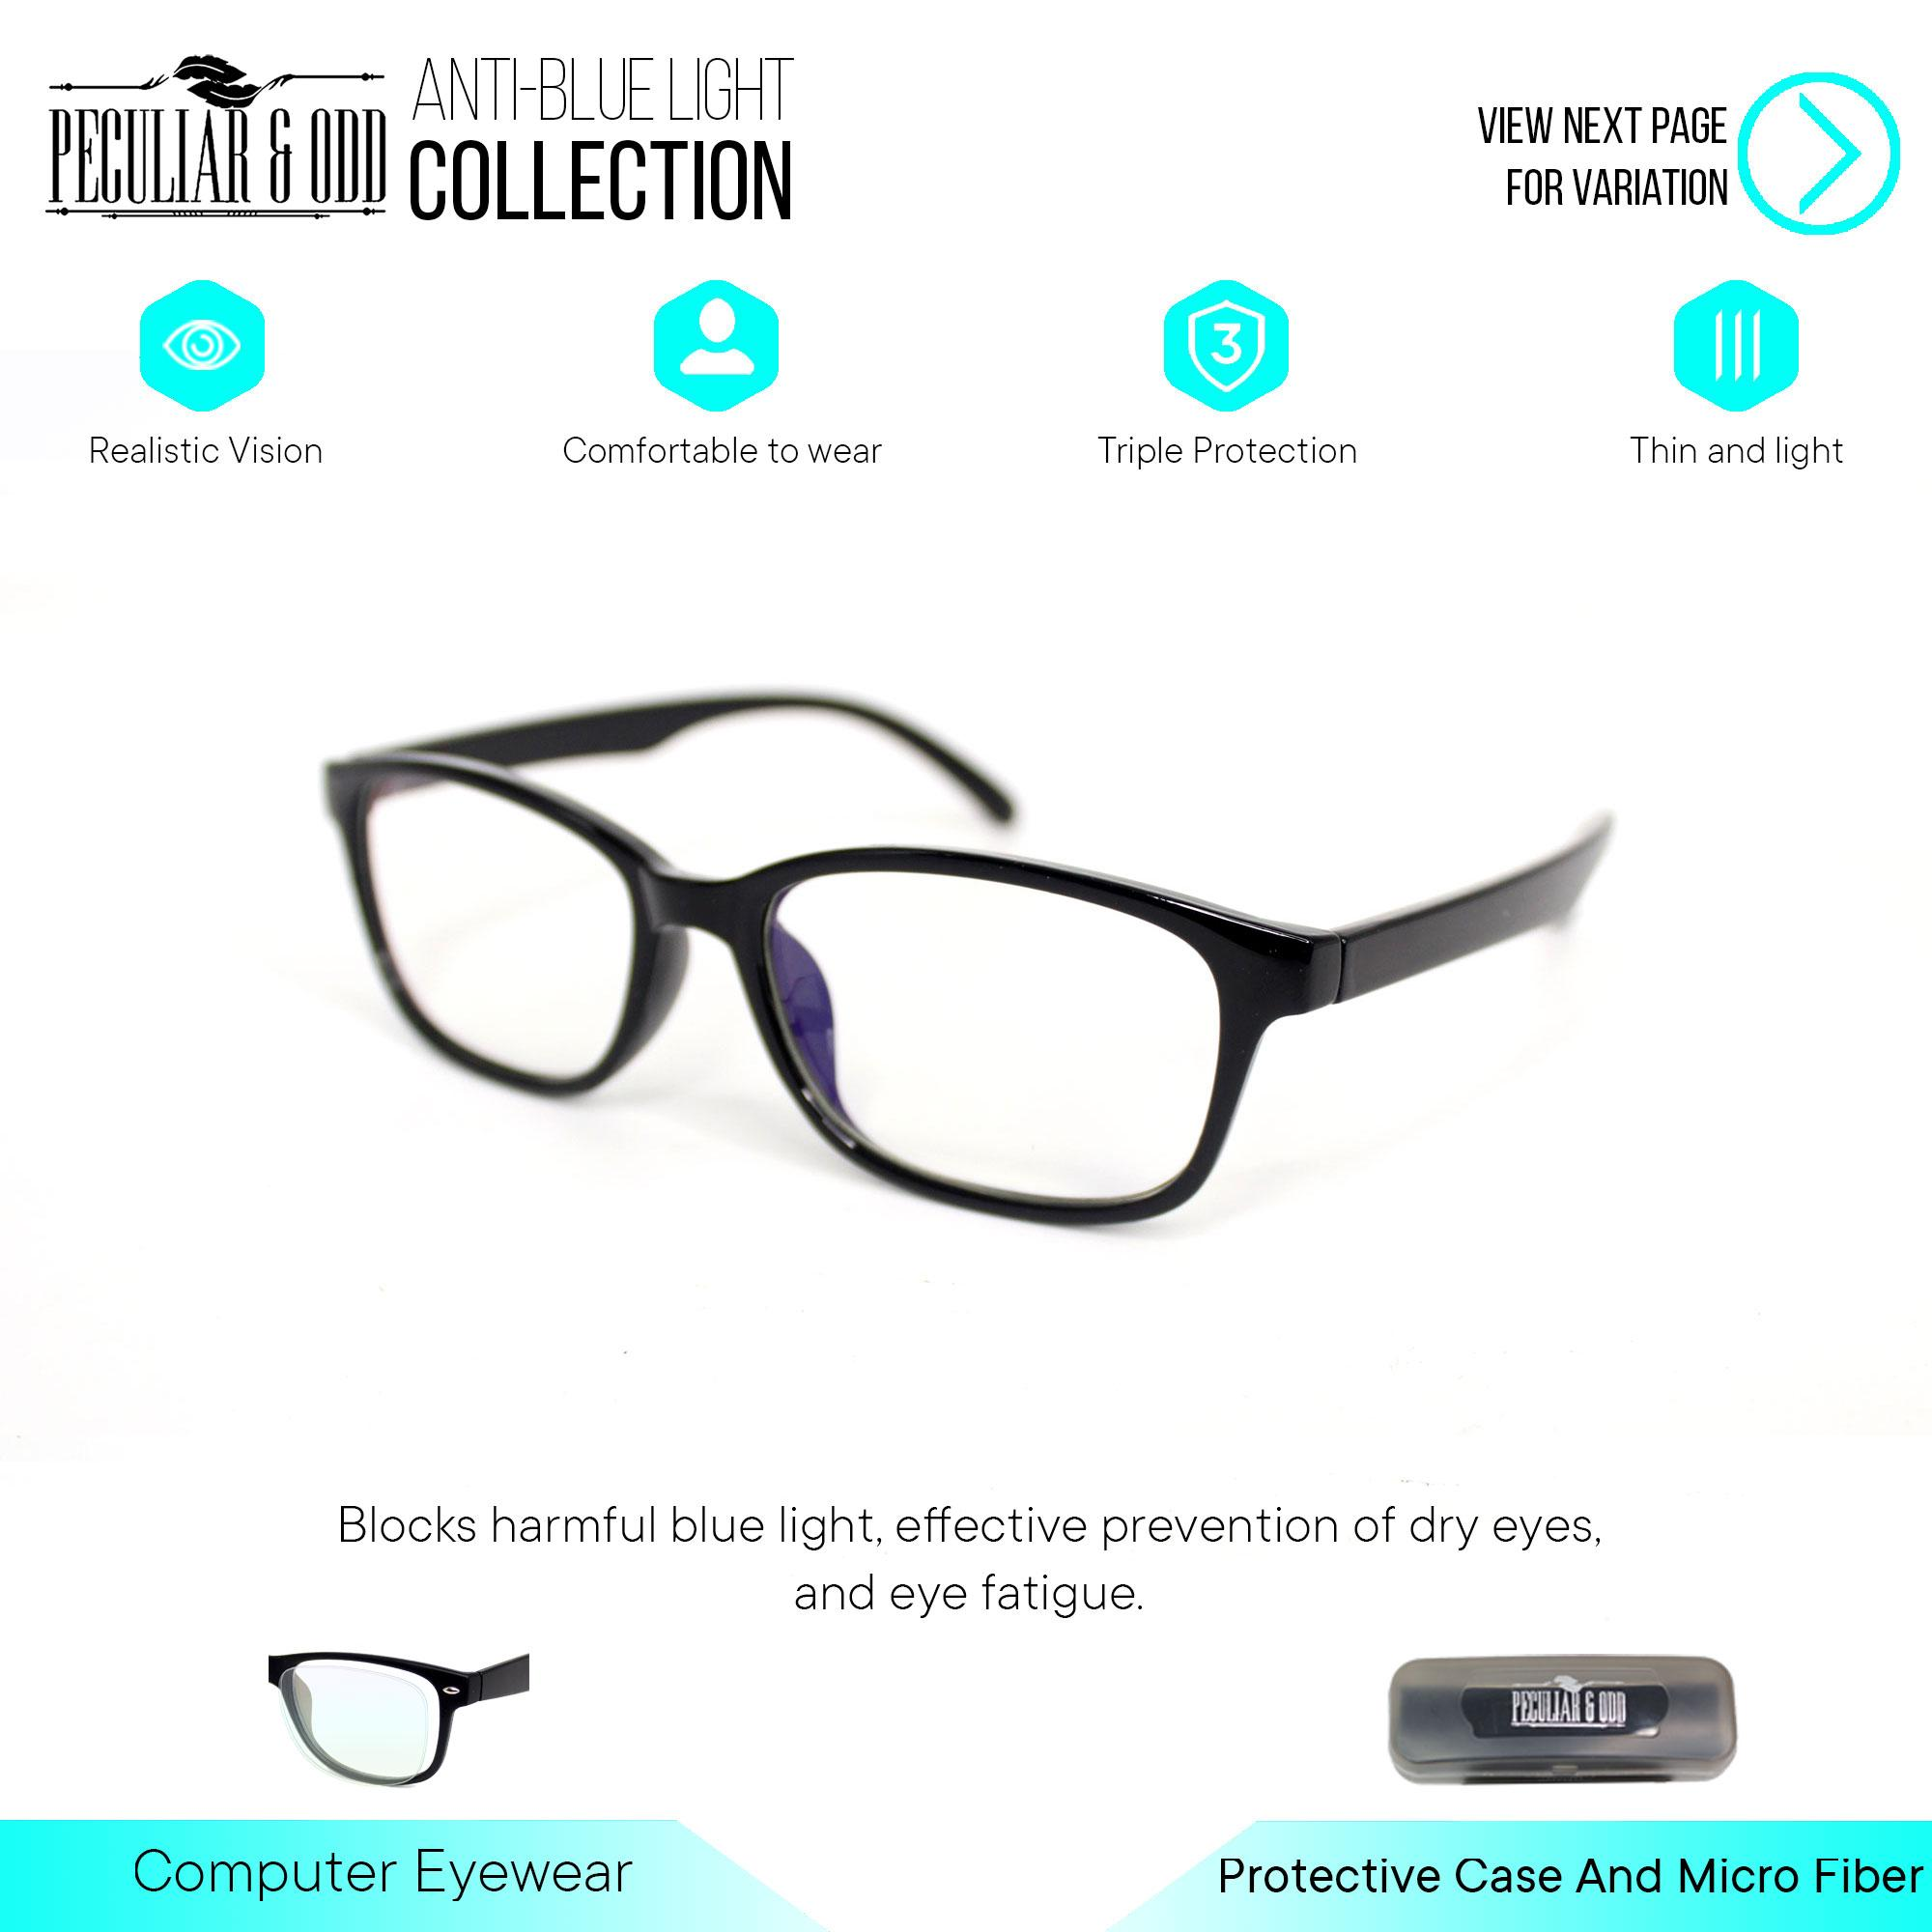 a14564a5f86 Peculiar Square 3028 JetBlack Anti Radiation Computer Eyeglass Optical  Replaceable Eyewear Unisex